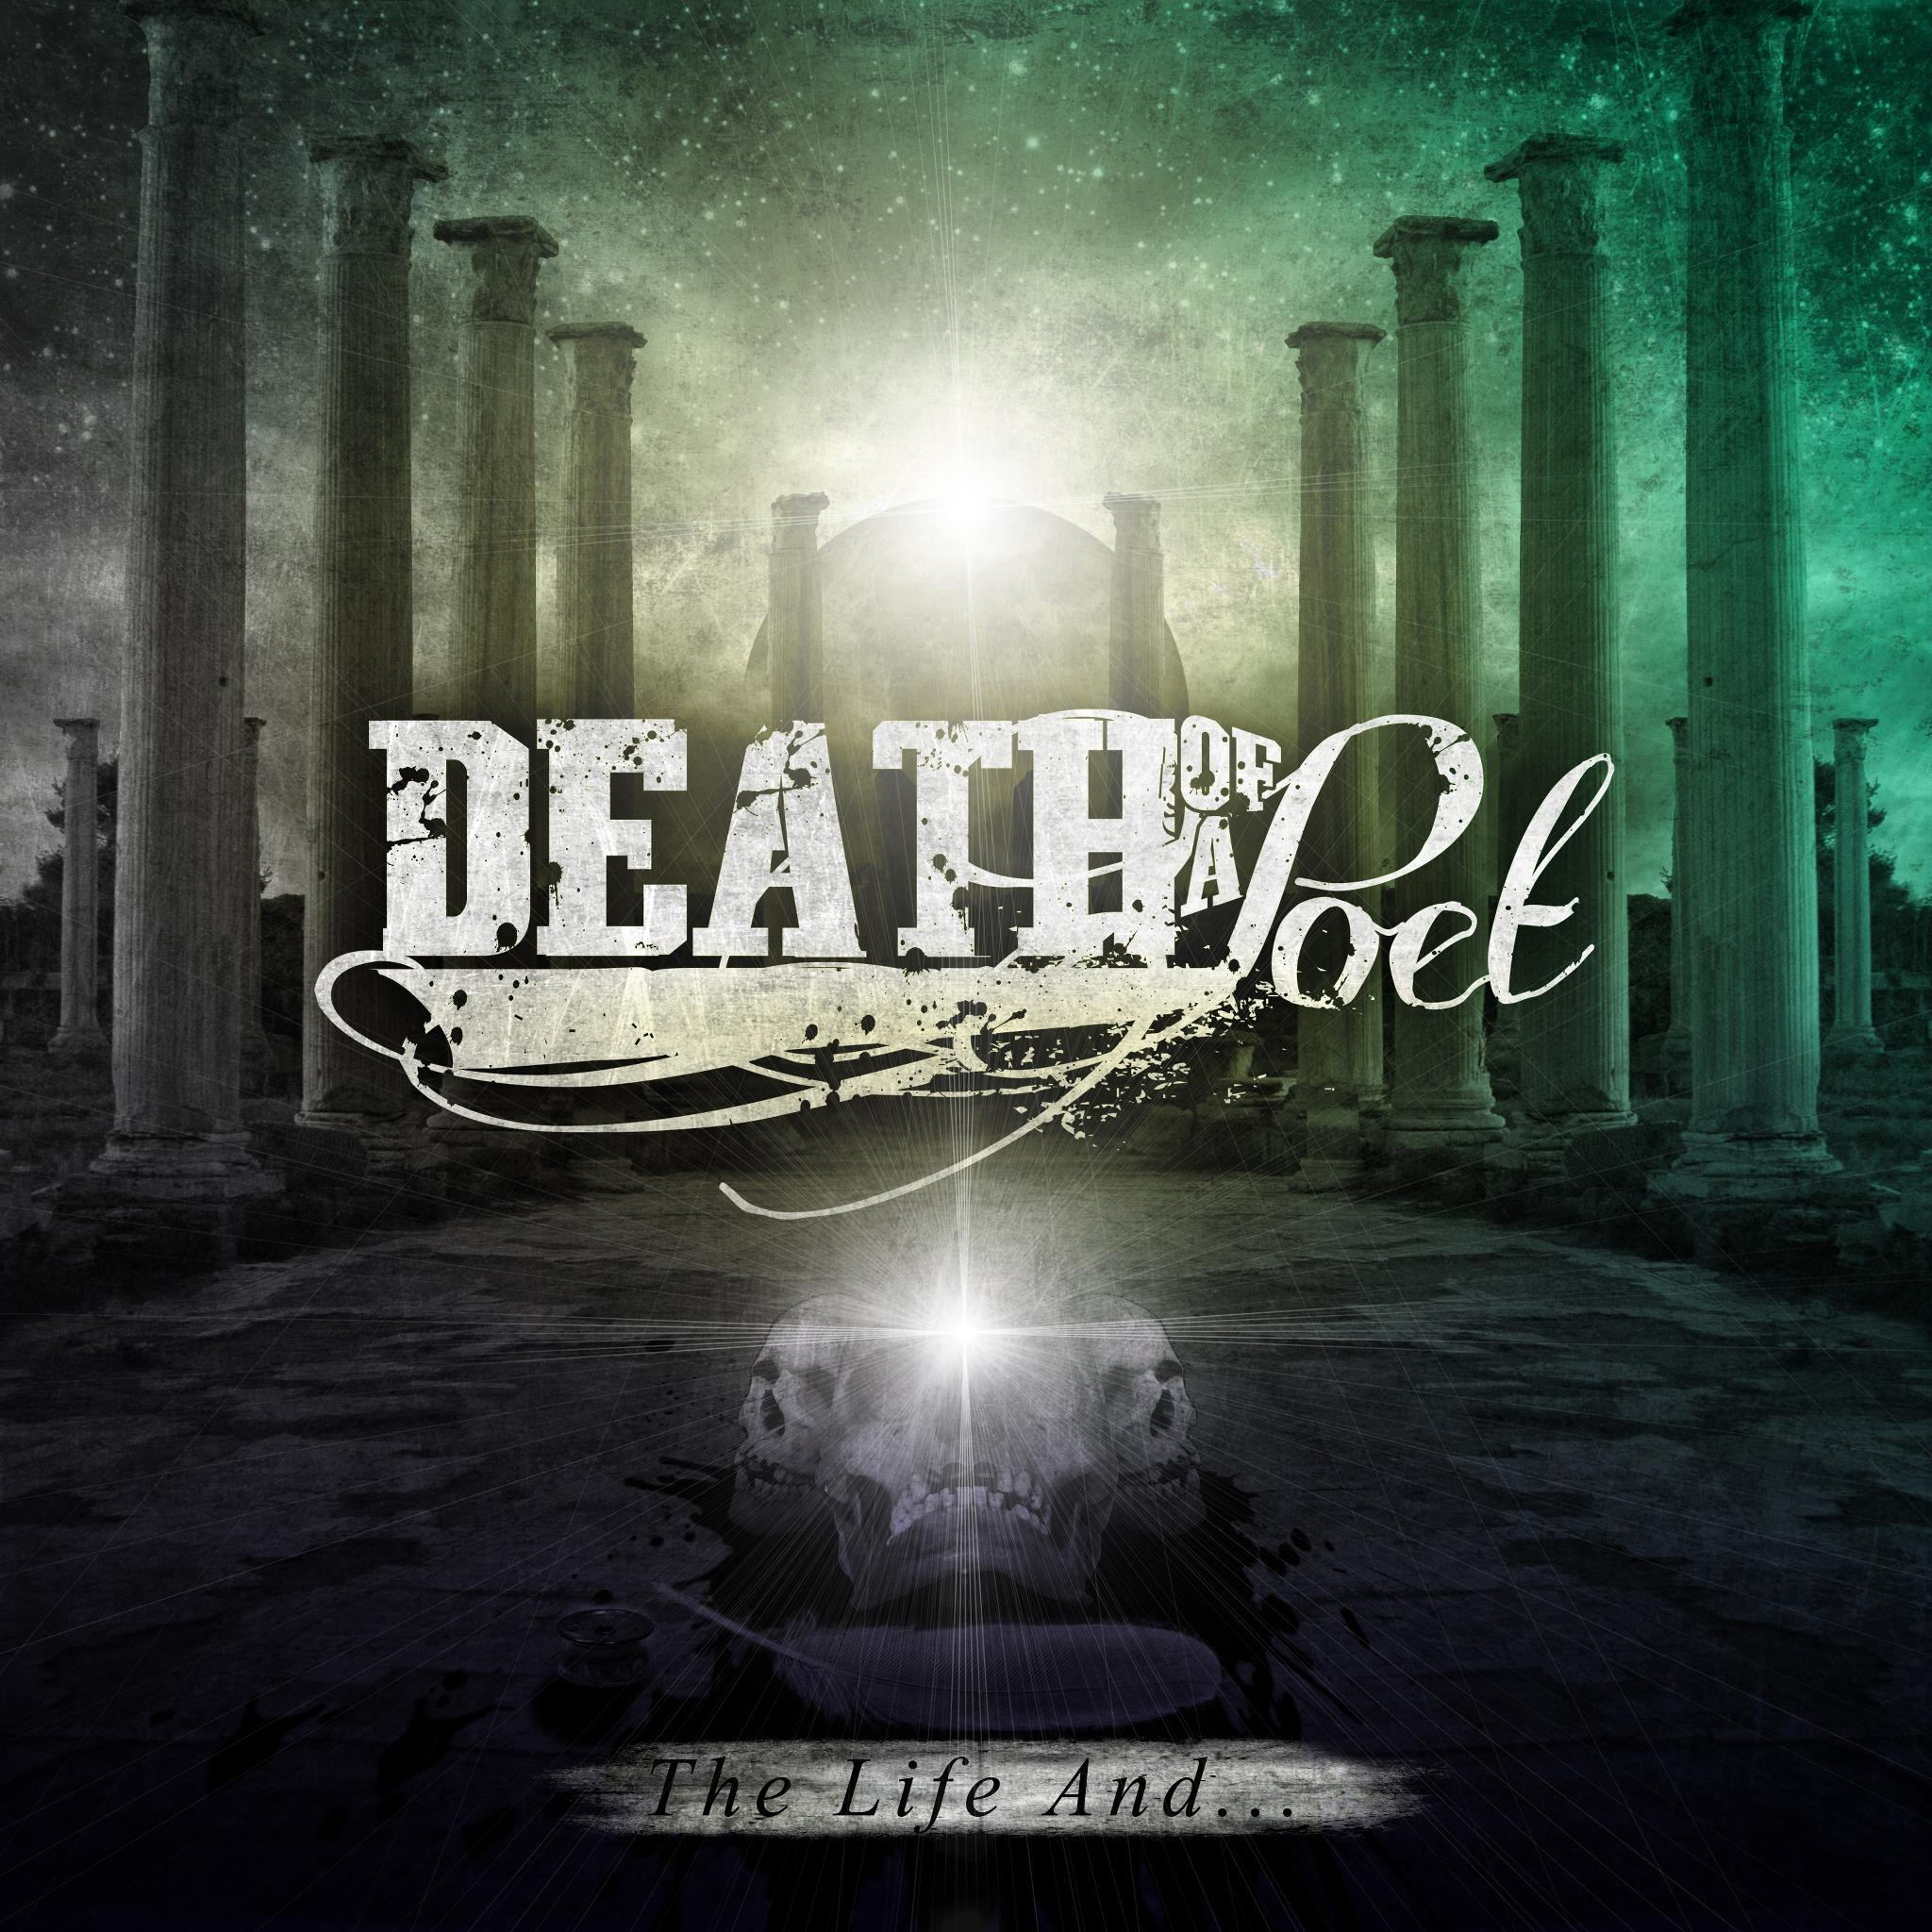 Death of a Poet - The Life And... [EP] (2012)